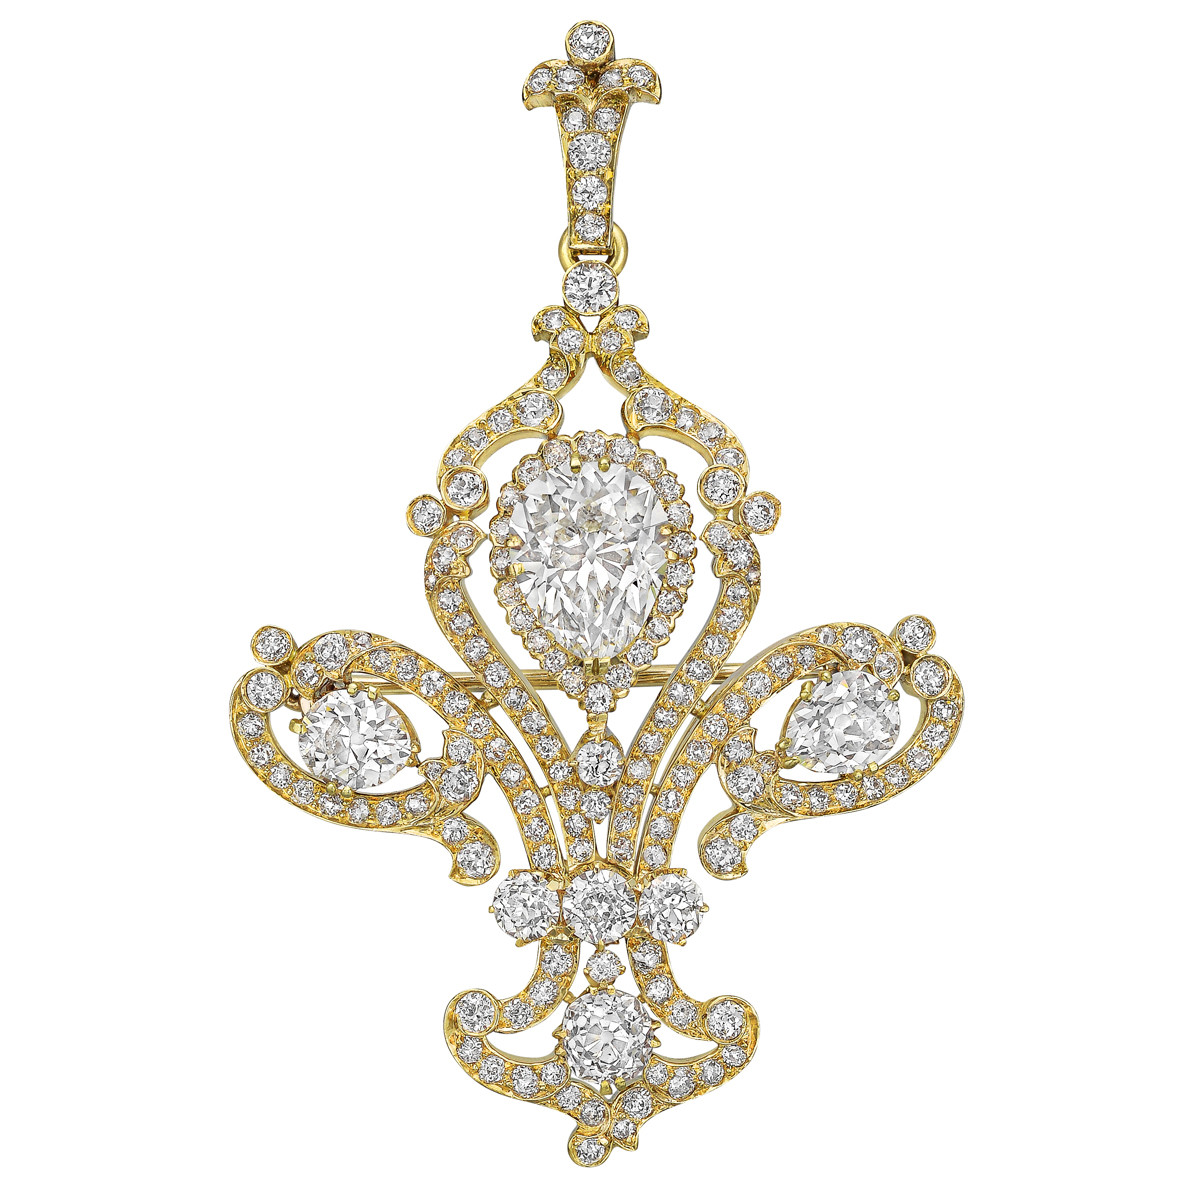 Late-19th Century Diamond Fleur-de-Lis Pendant Brooch